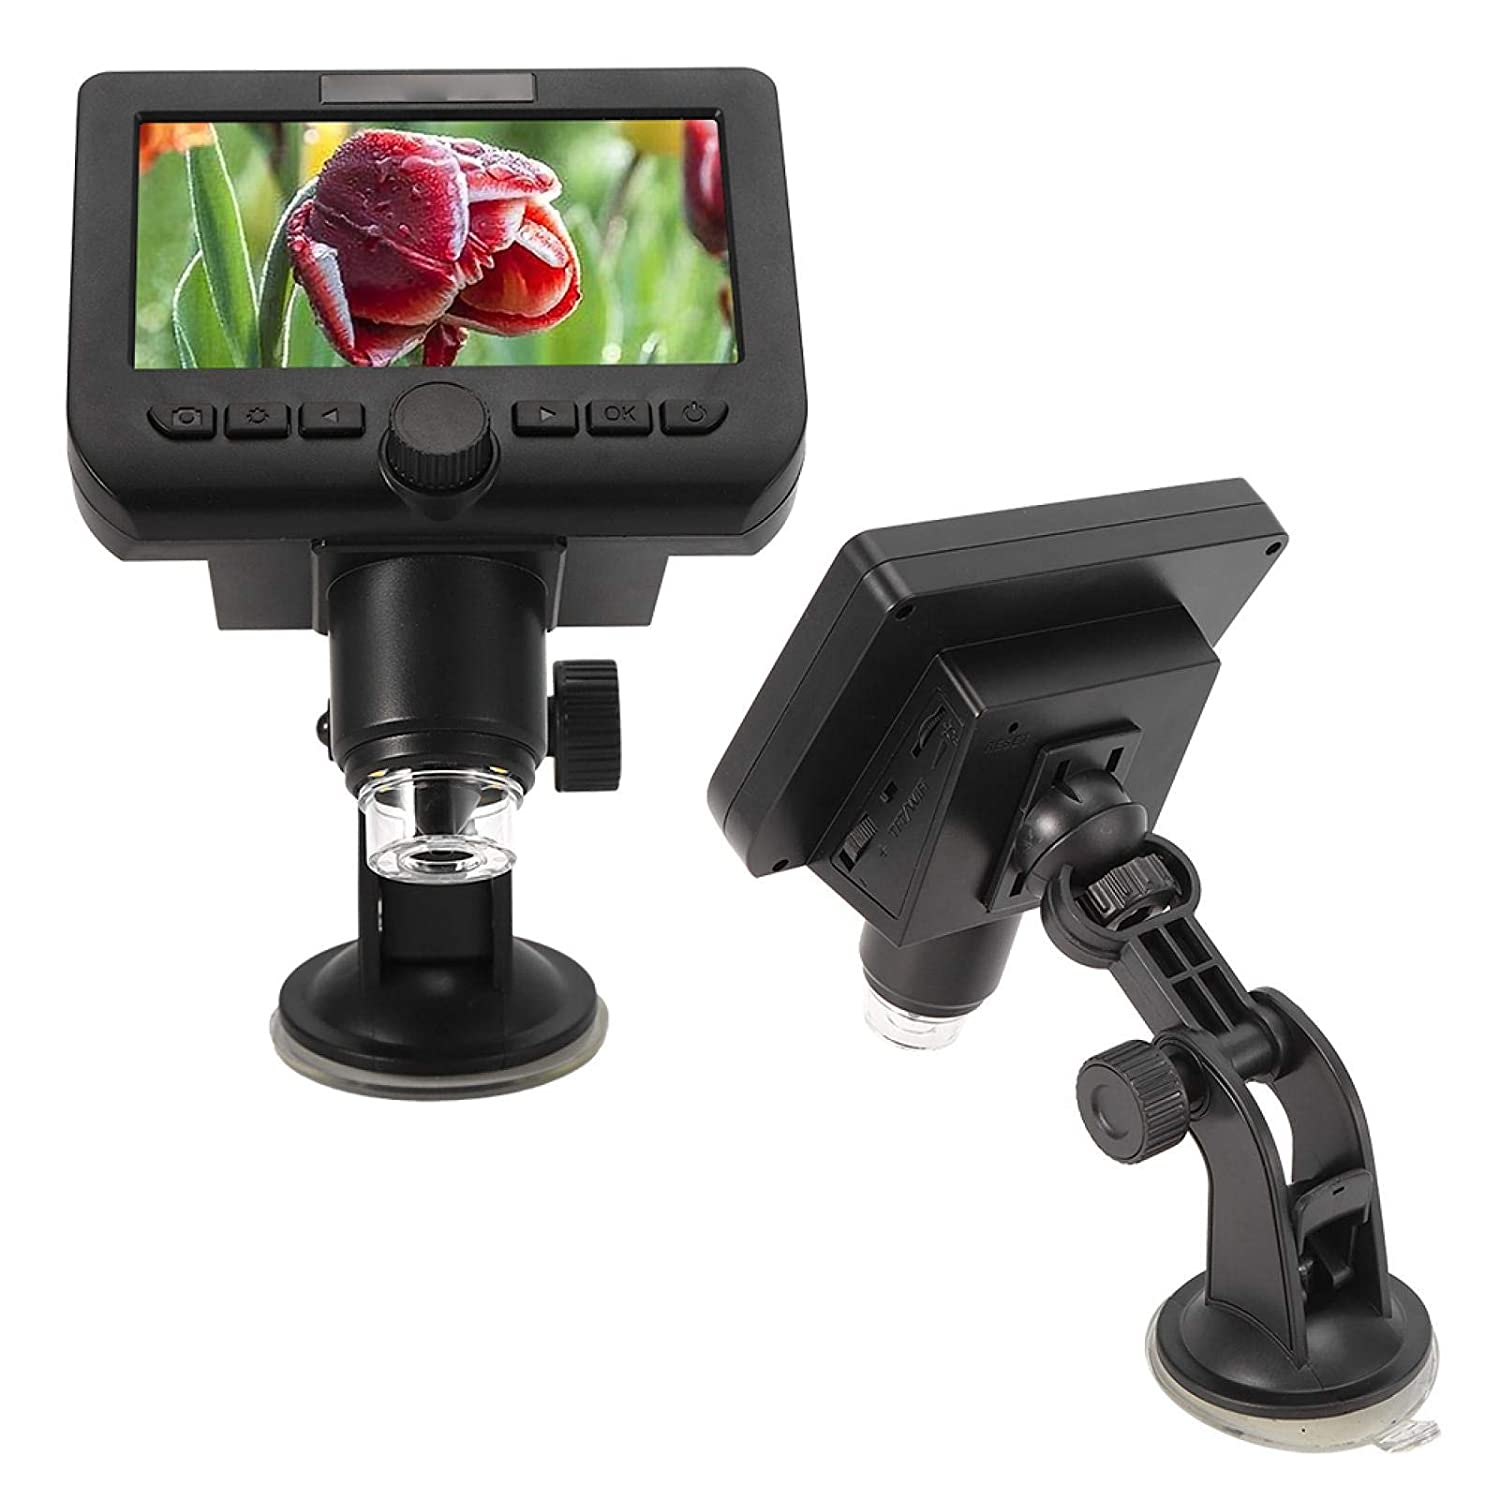 16:9 LED Magnifier 1080P 8 LED 4.3in TFT Digital Microscope with Screen for Android